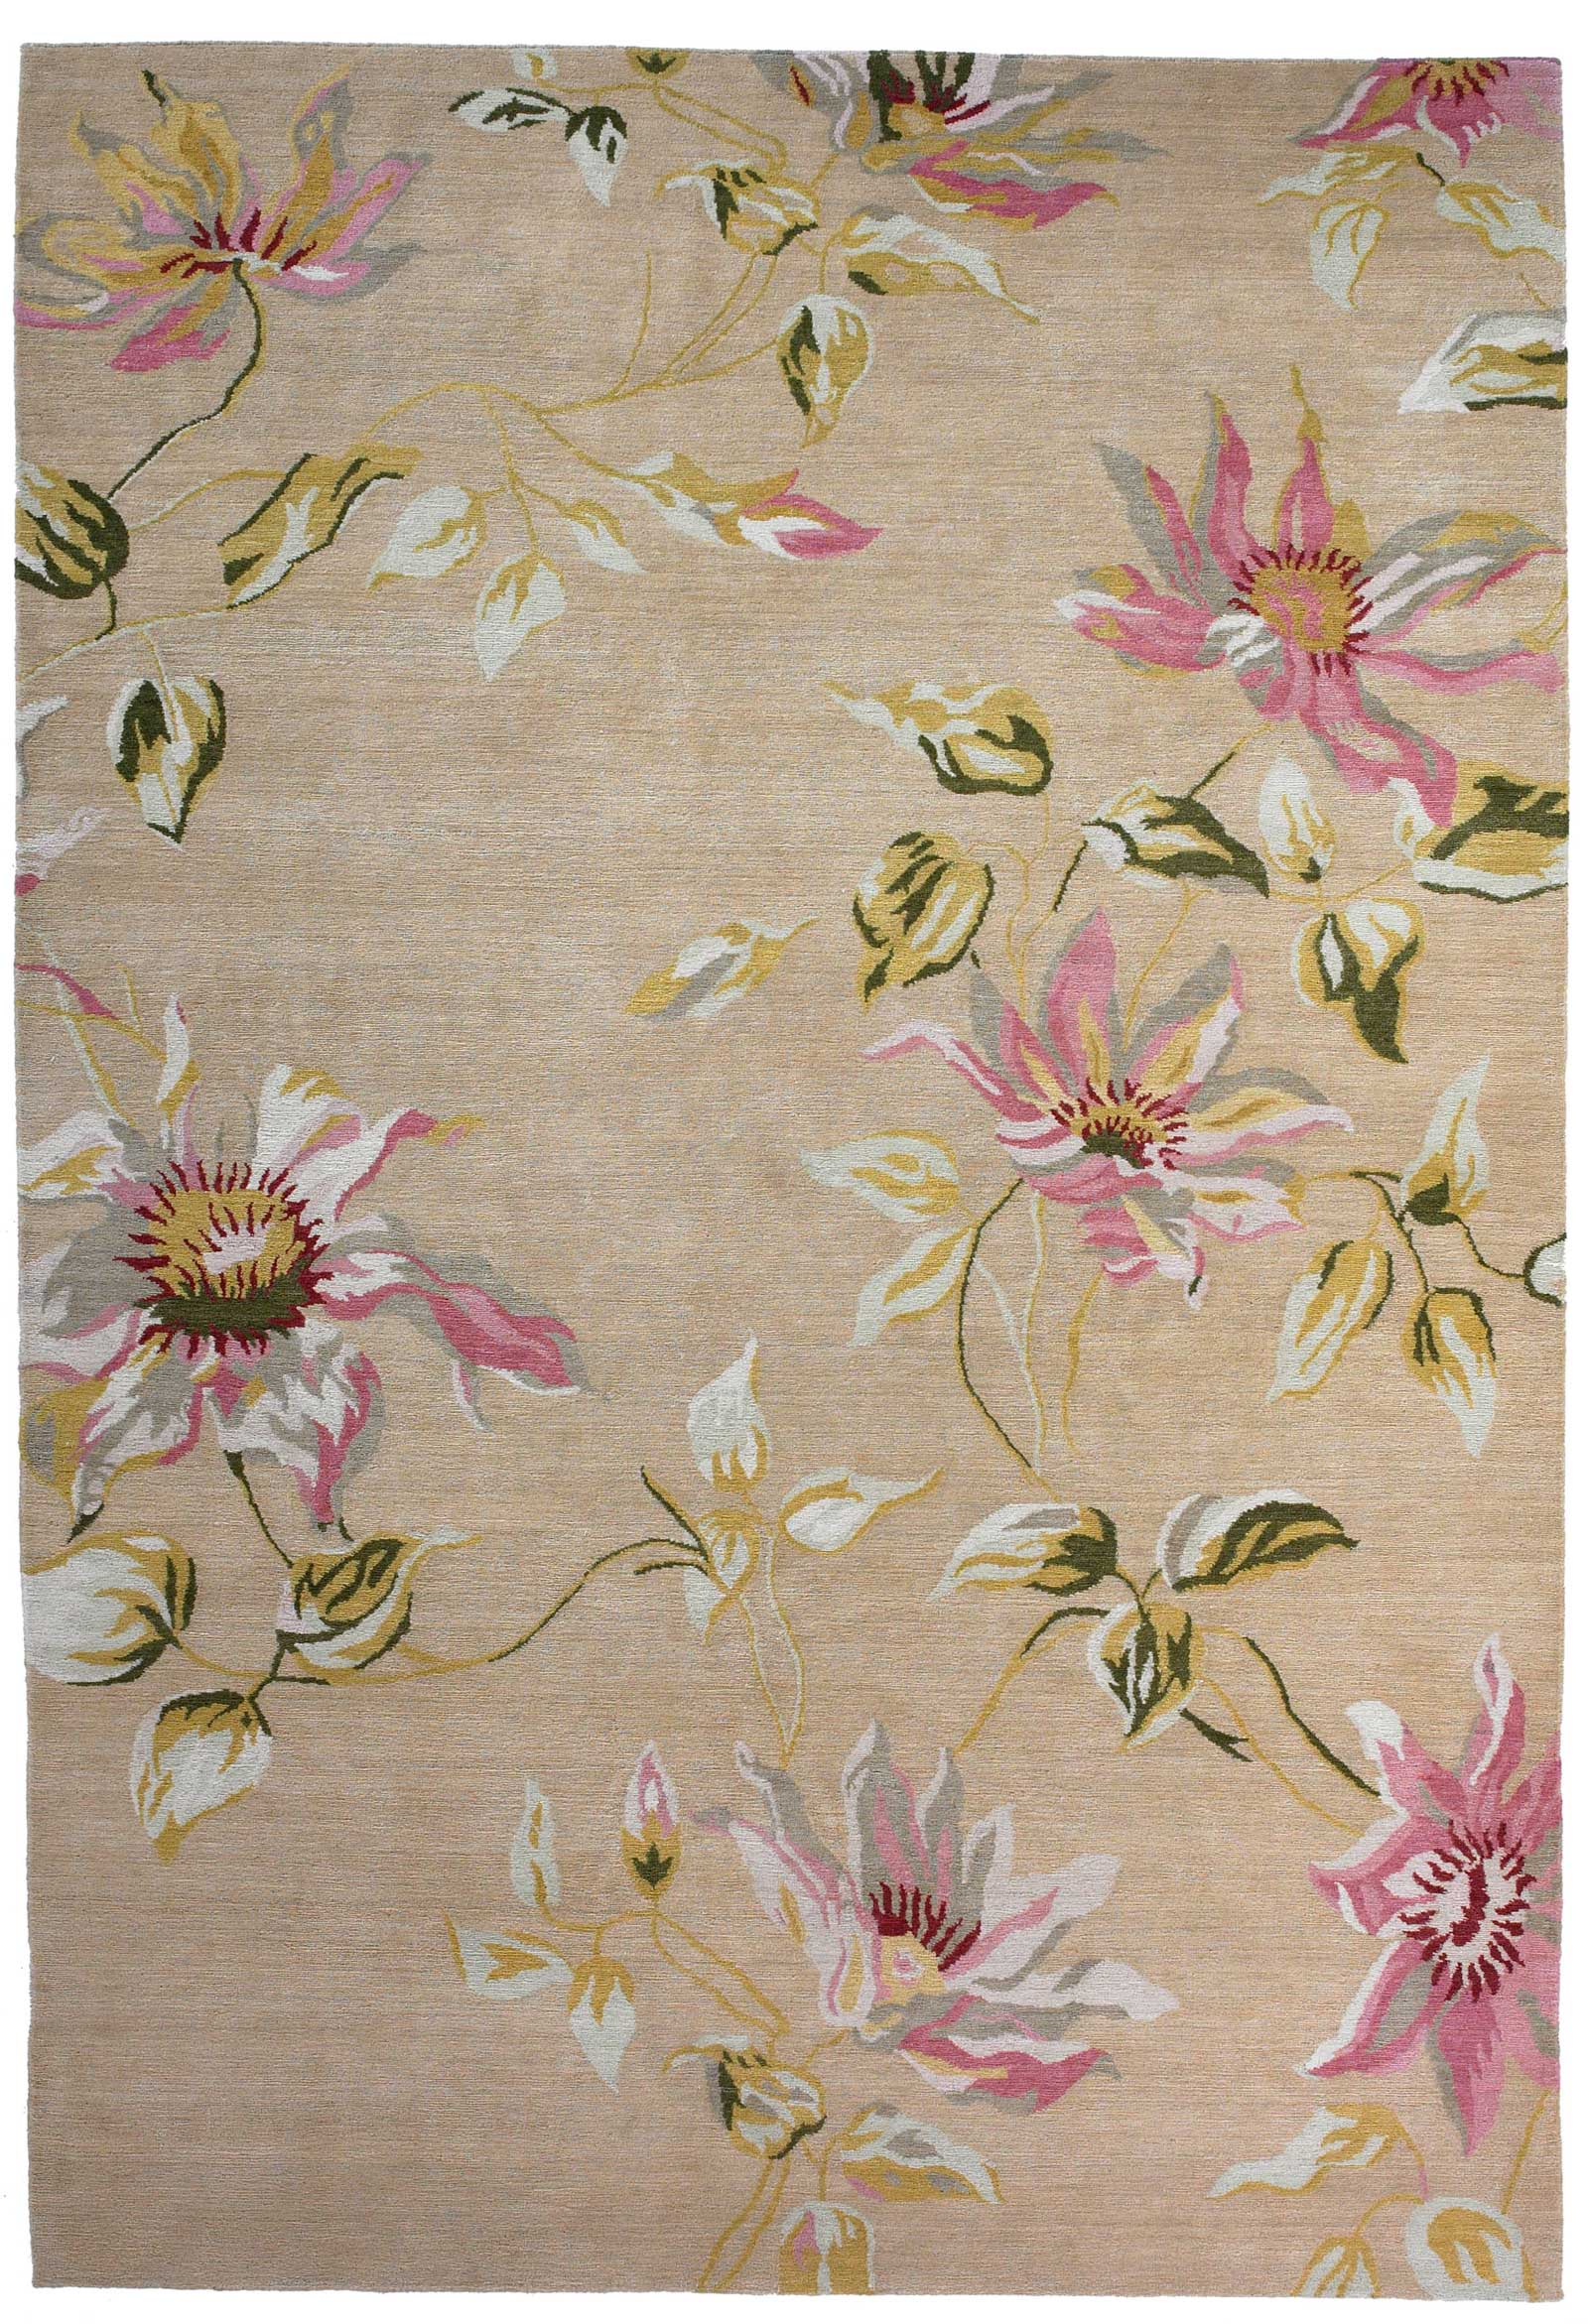 paul-smith-passion-flower-nep-rug_1600_4.jpg